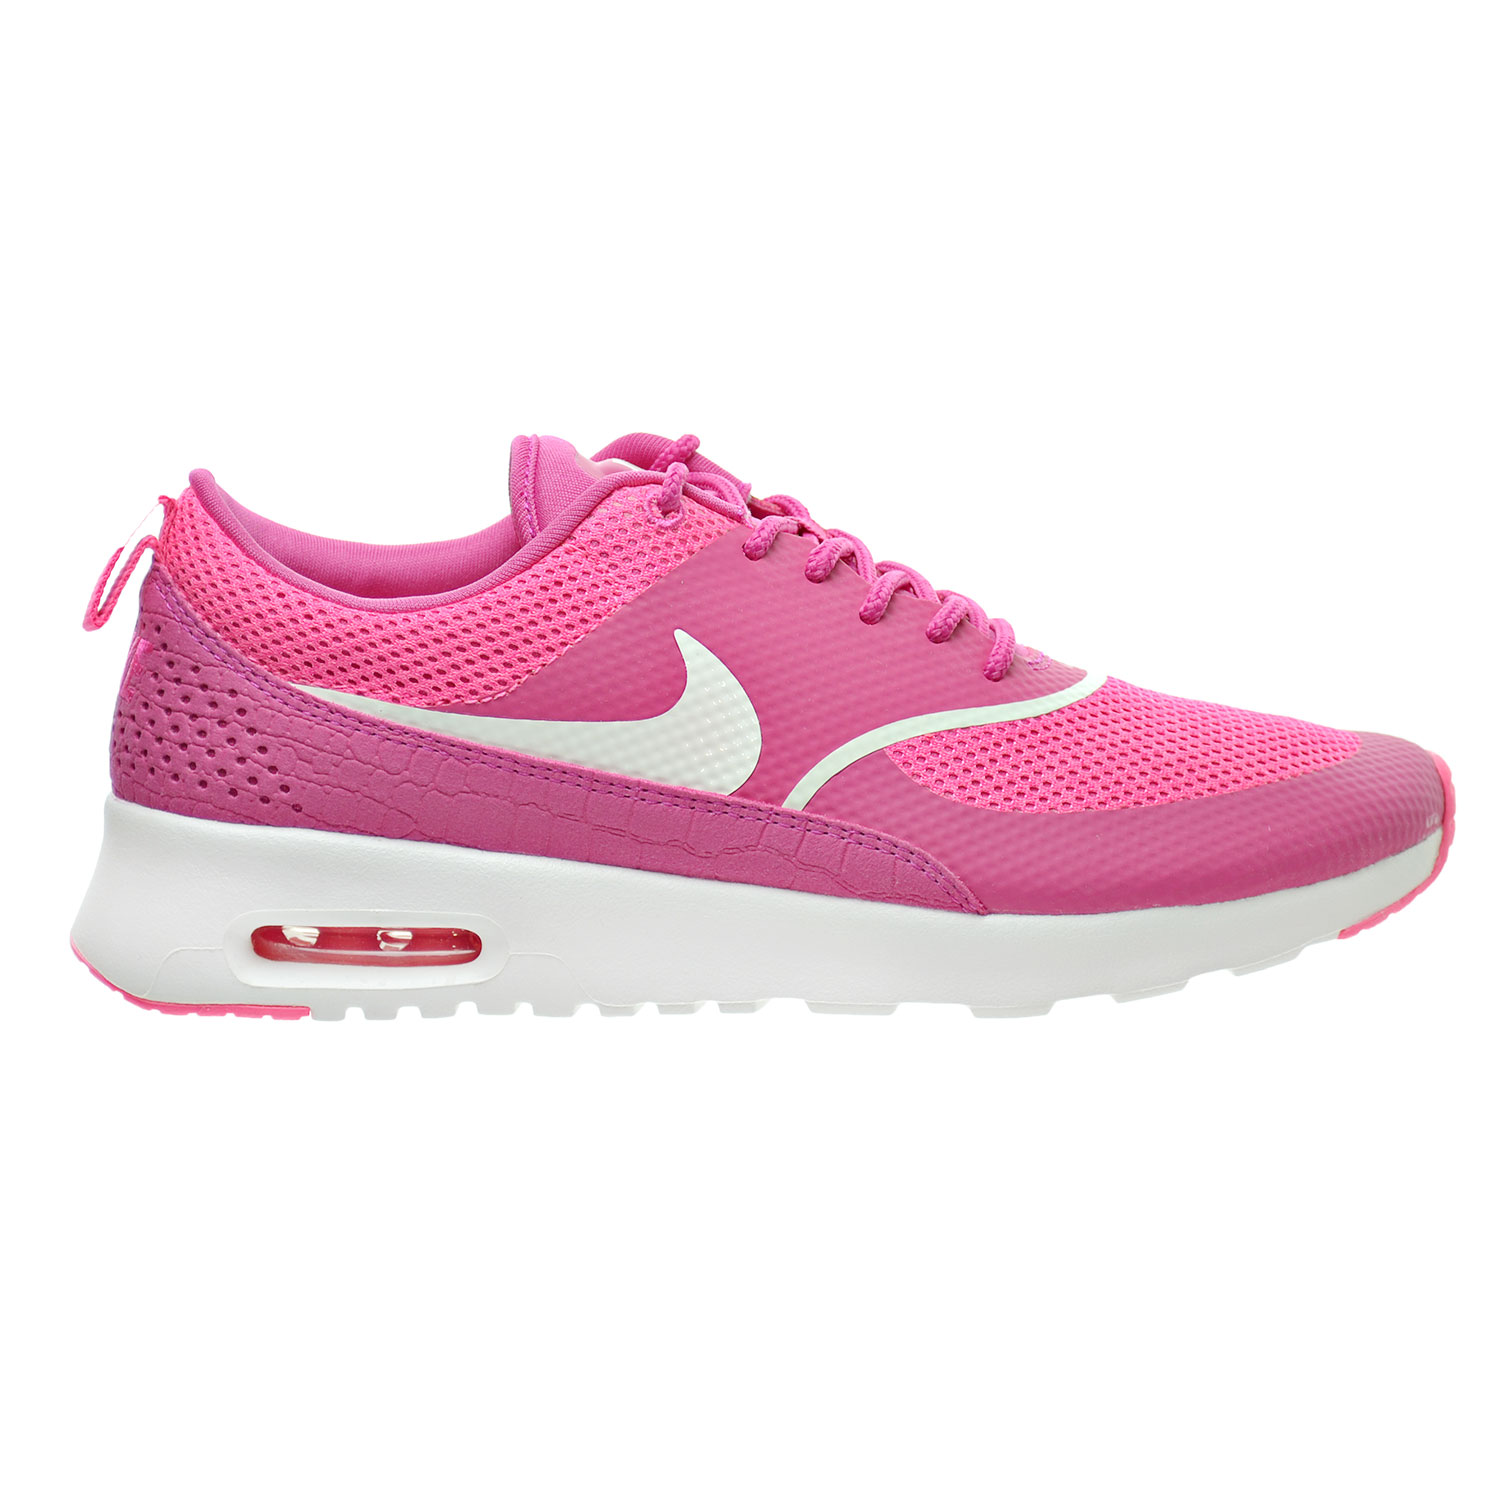 nike air max thea women 39 s shoes vivid pink summit white. Black Bedroom Furniture Sets. Home Design Ideas